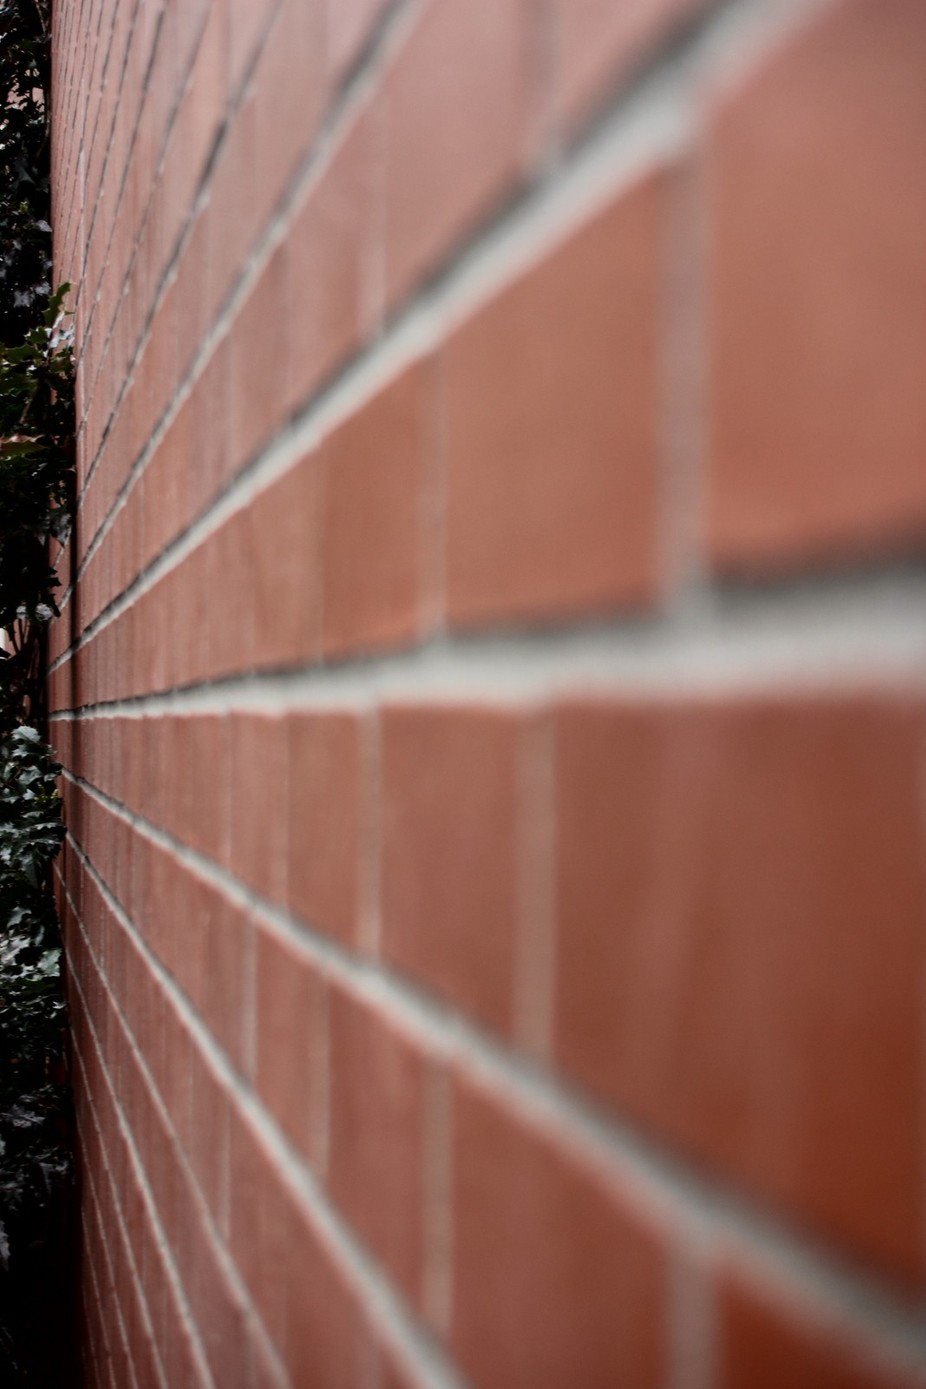 This is a photo of a brick wall that is by my school.